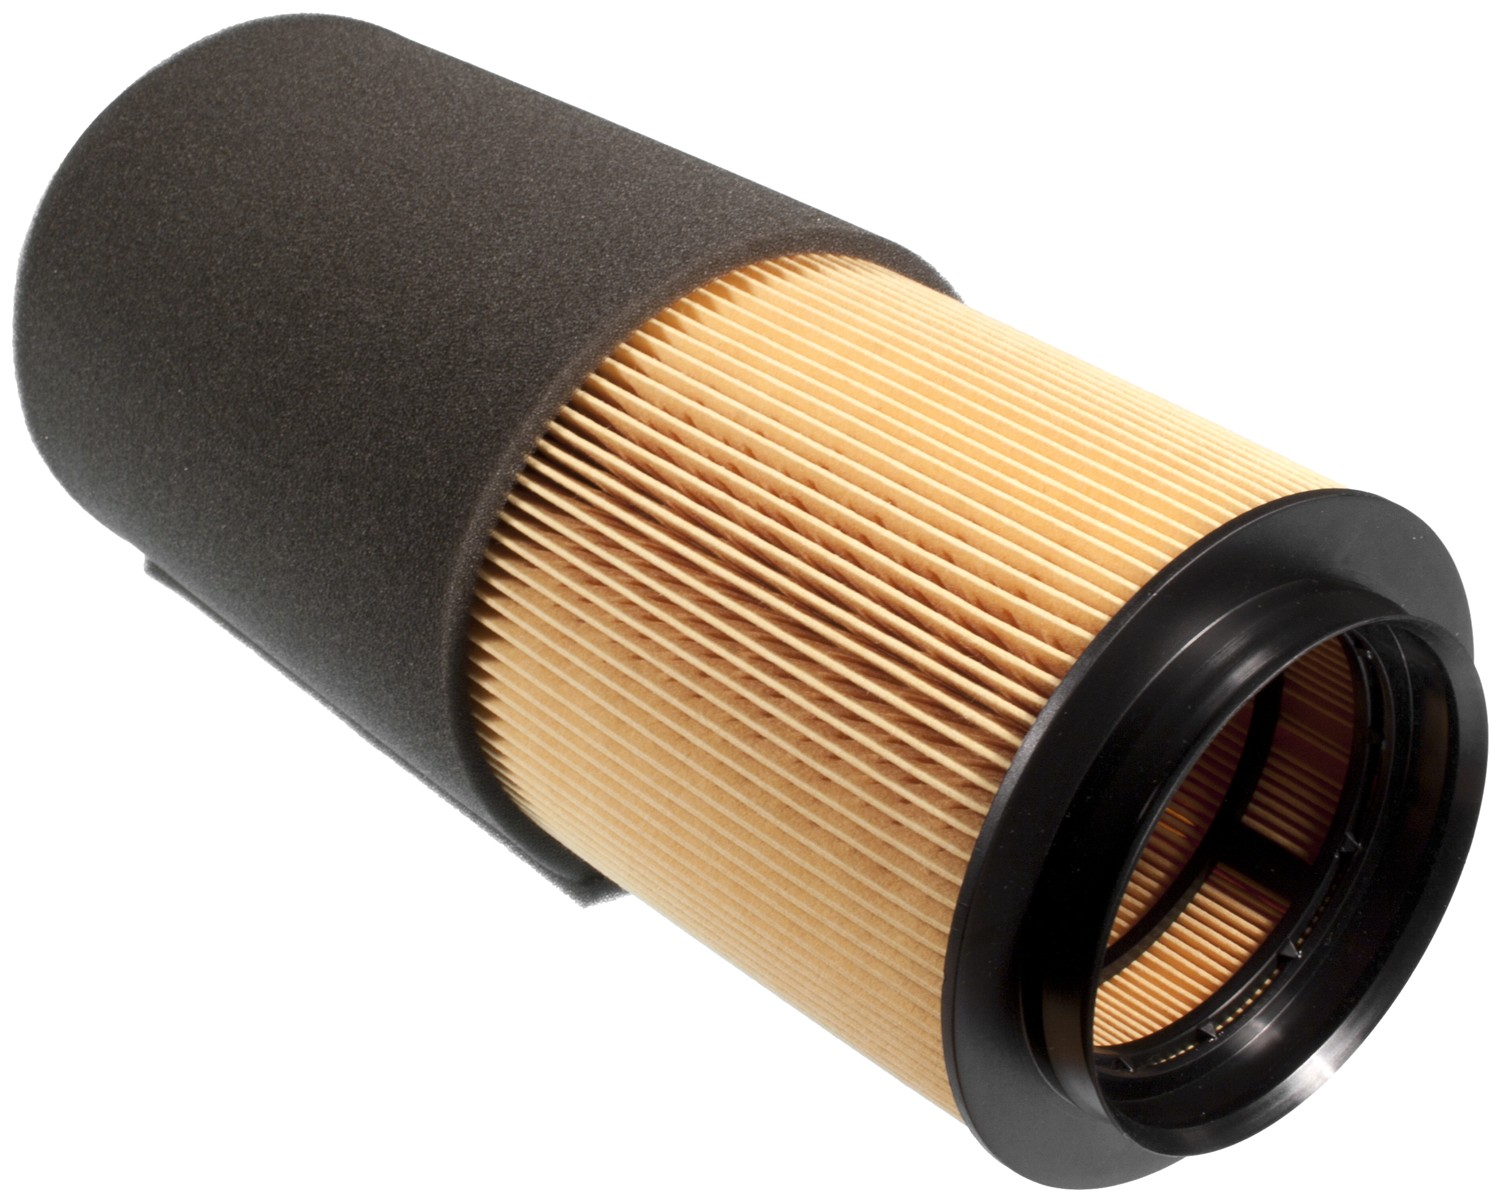 New Volvo S60 Mahle Air Filter LX938 8649788